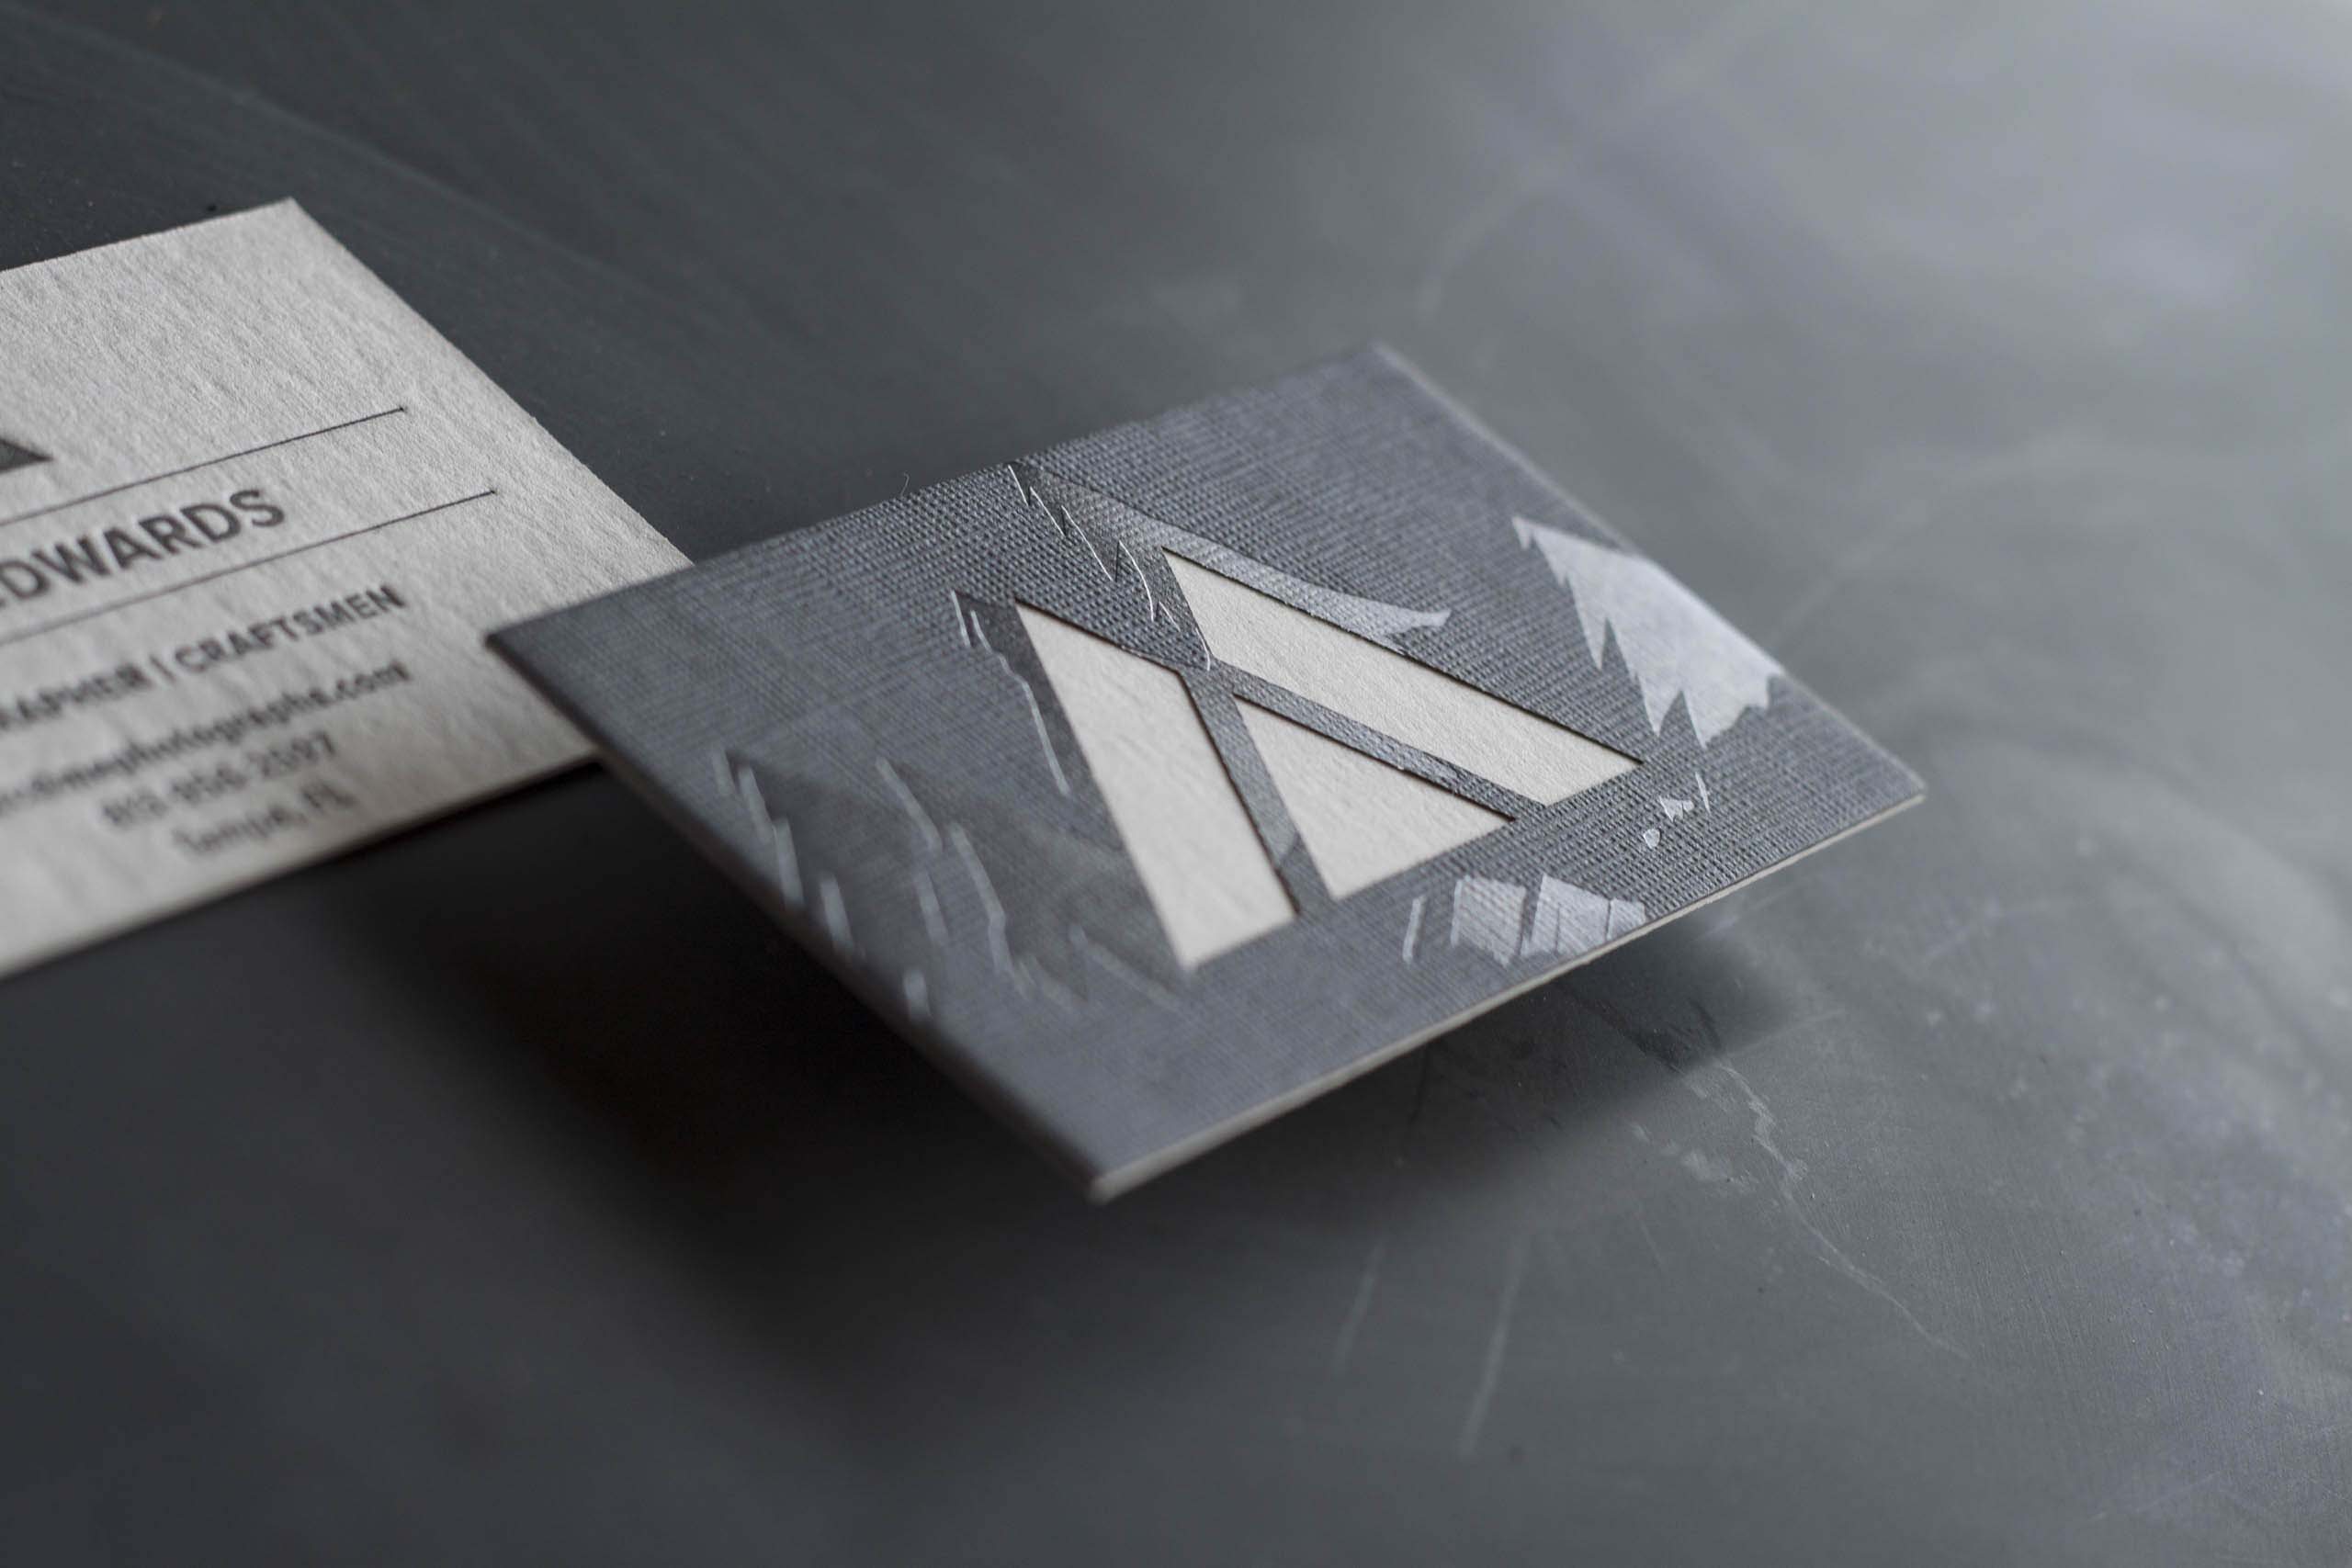 One Key to a Memorable Business Card - A Fine Press